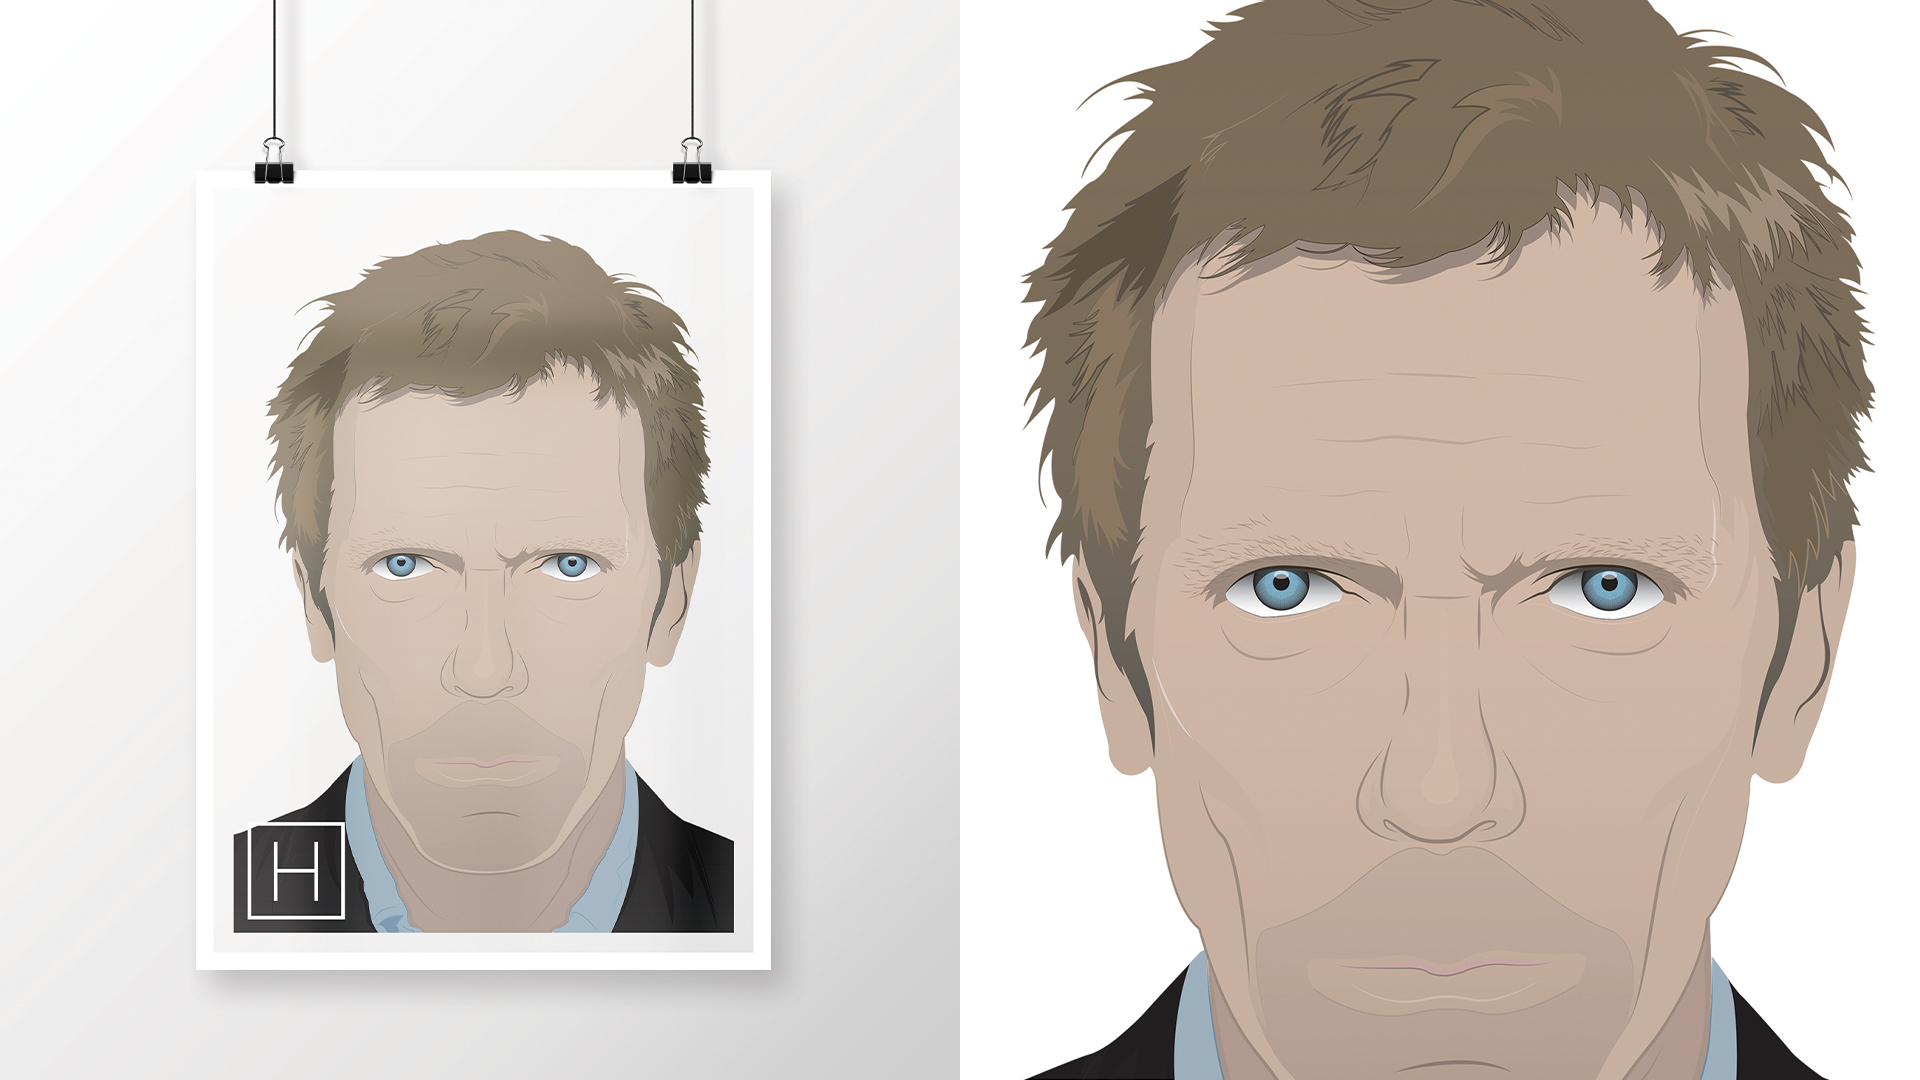 Hugh Laurie as Gregory House, M.D.   As seen in House M.D.